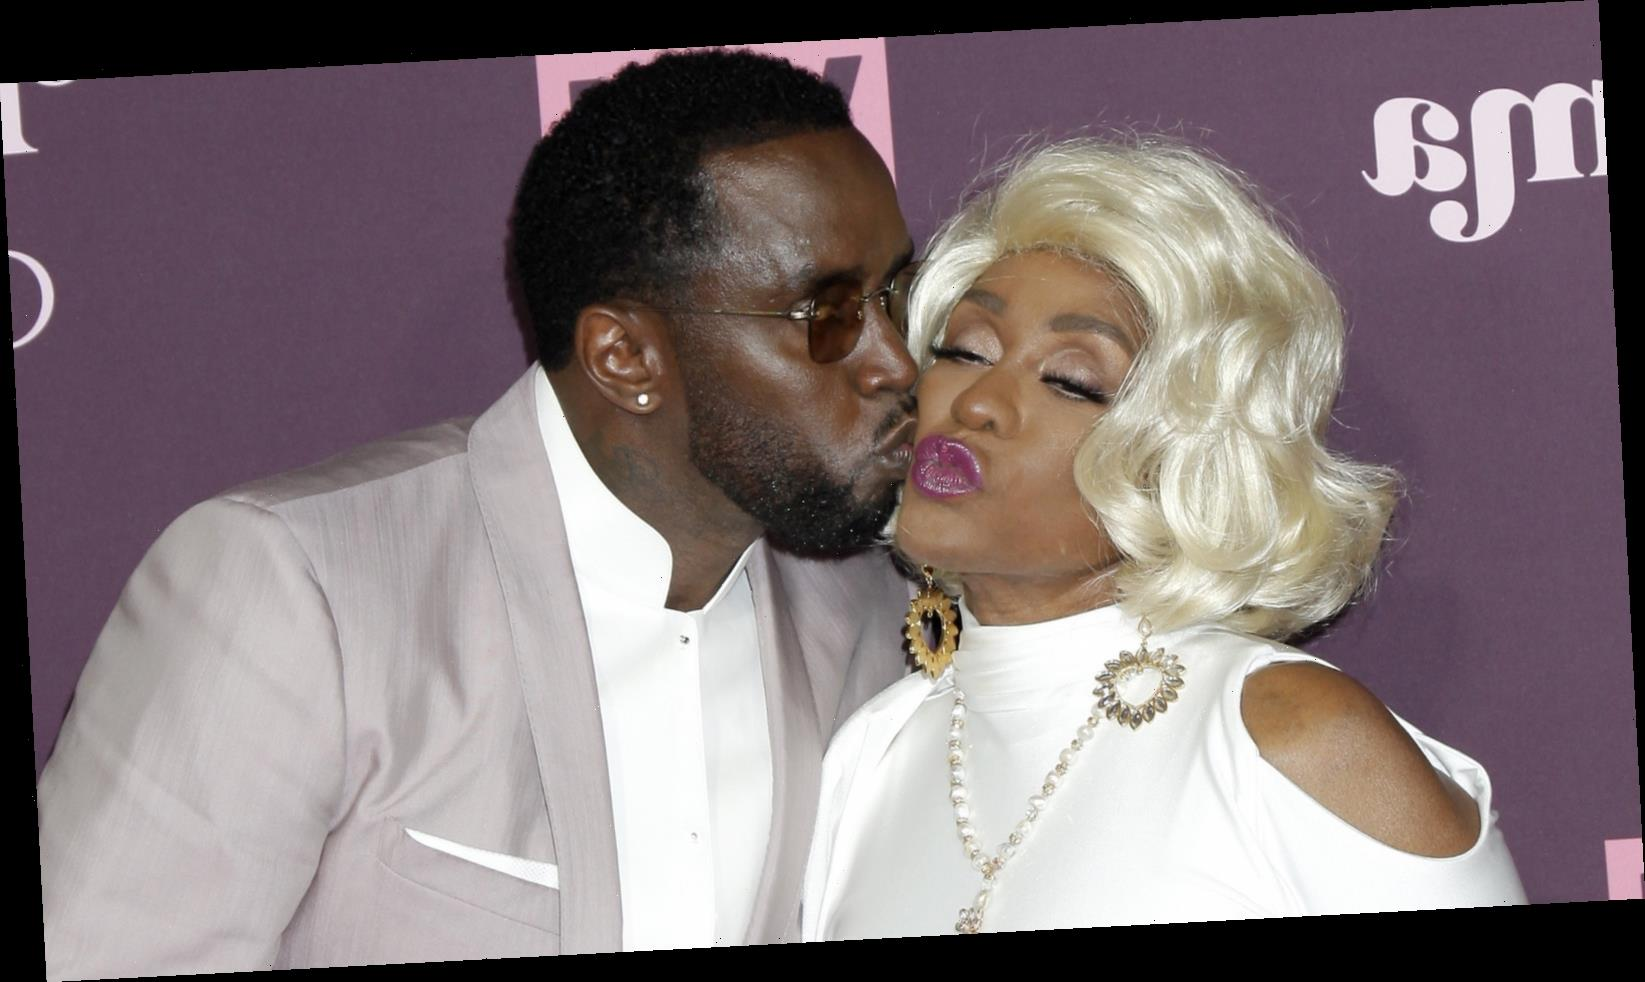 You Won't Believe What Diddy Gave His Mom For Her 80th Birthday